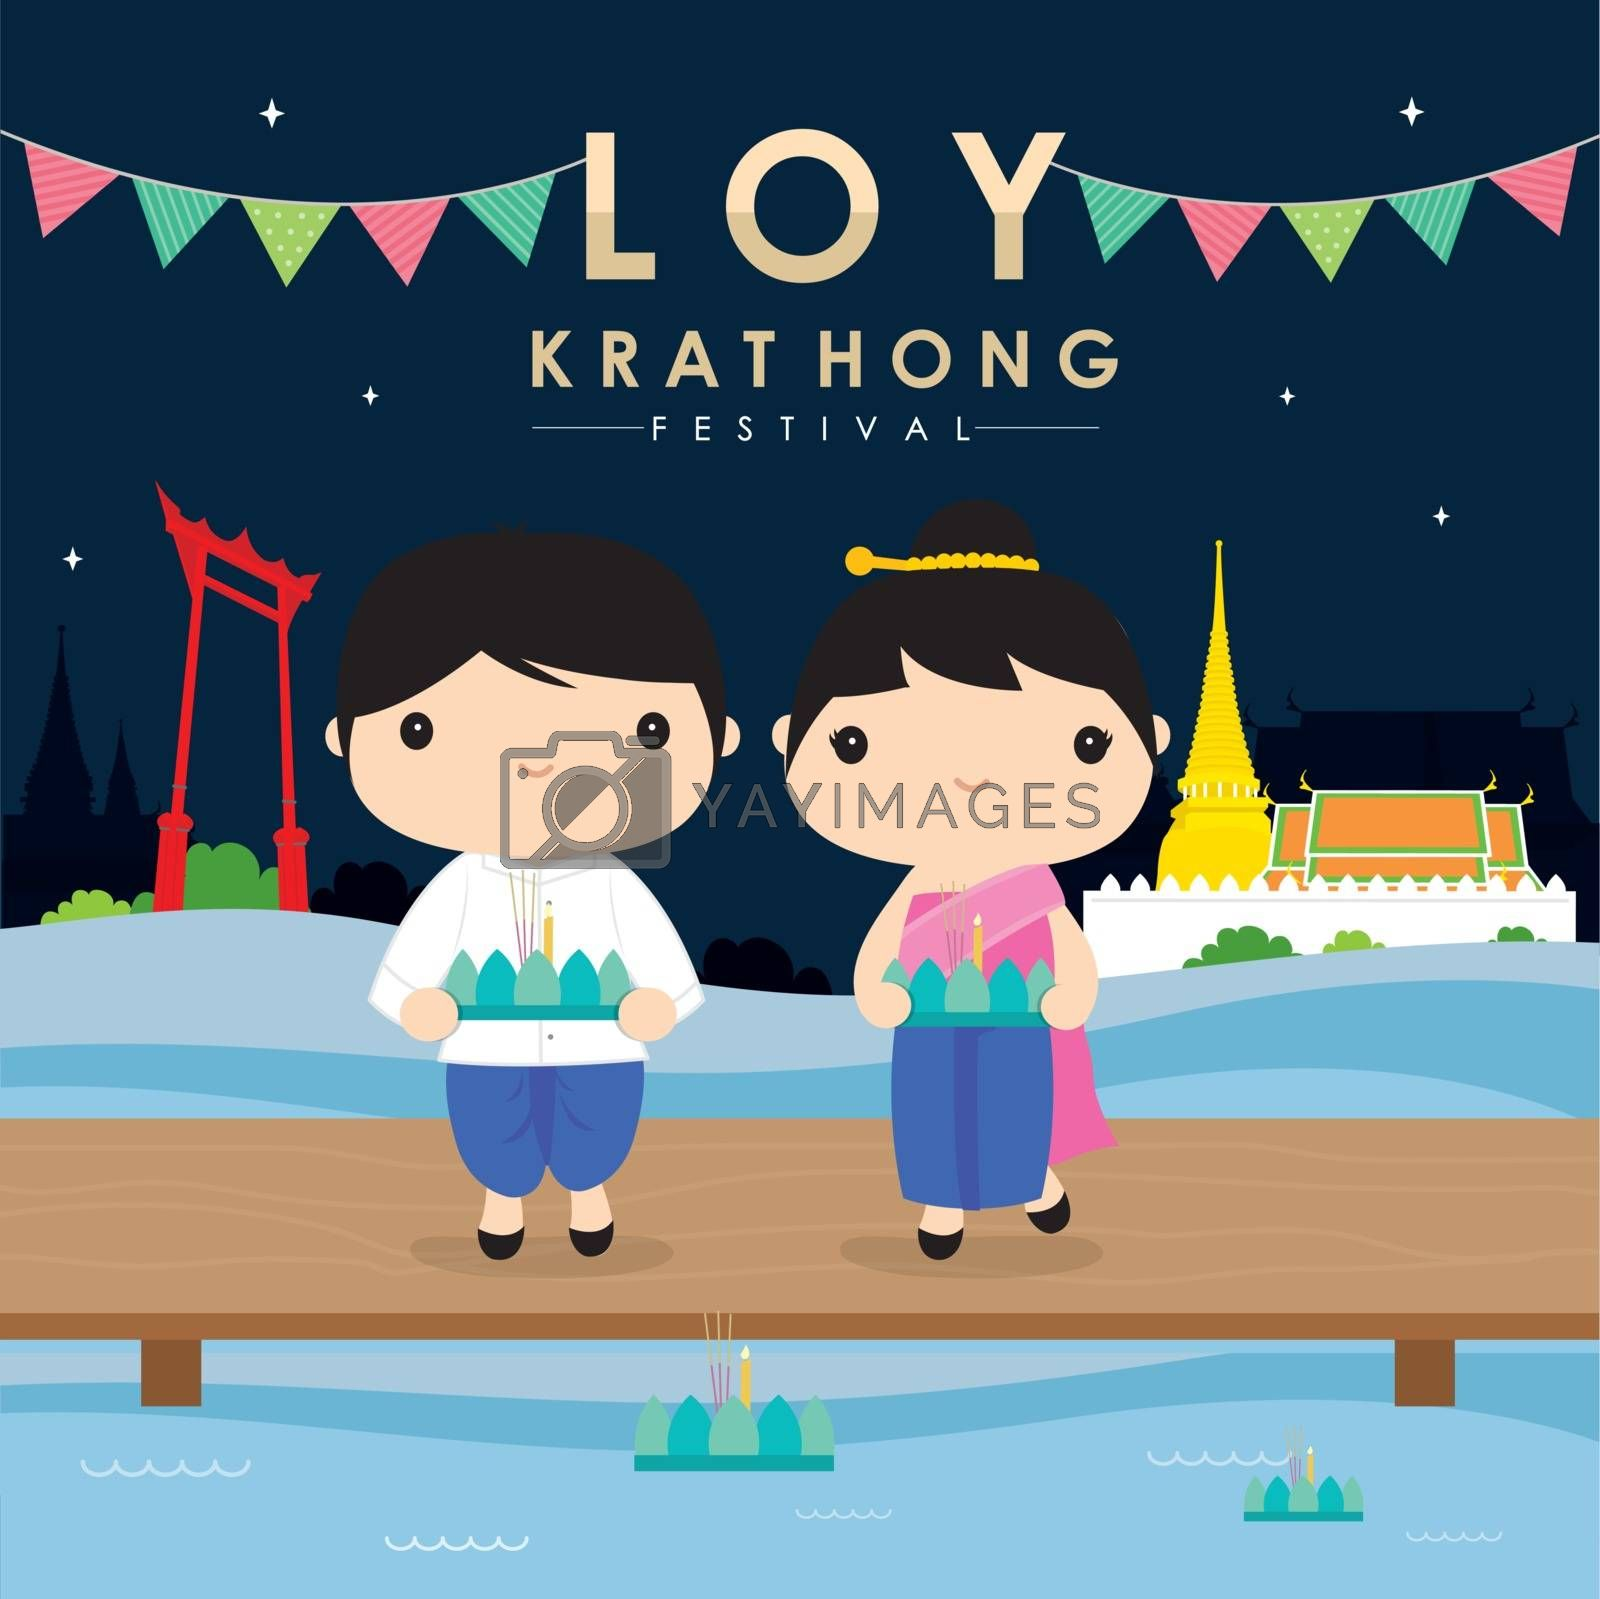 Loy Krathong is Traditional festival in Thailand, paying respect to the water spirits Vector.